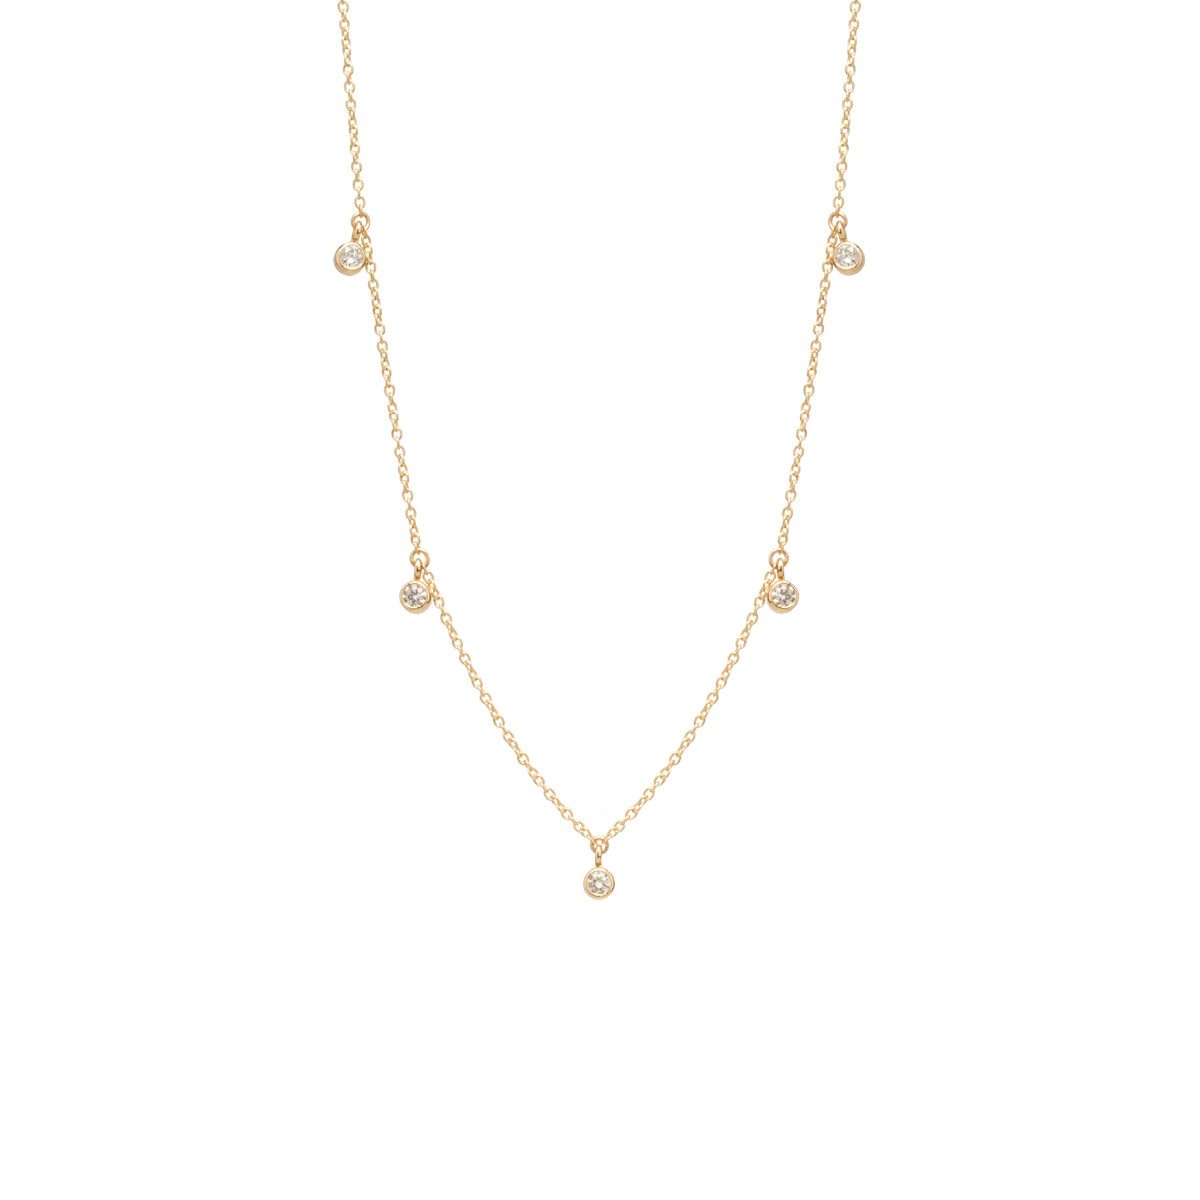 14K 5 DANGLING DIAMONDS CHOKER NECKLACE